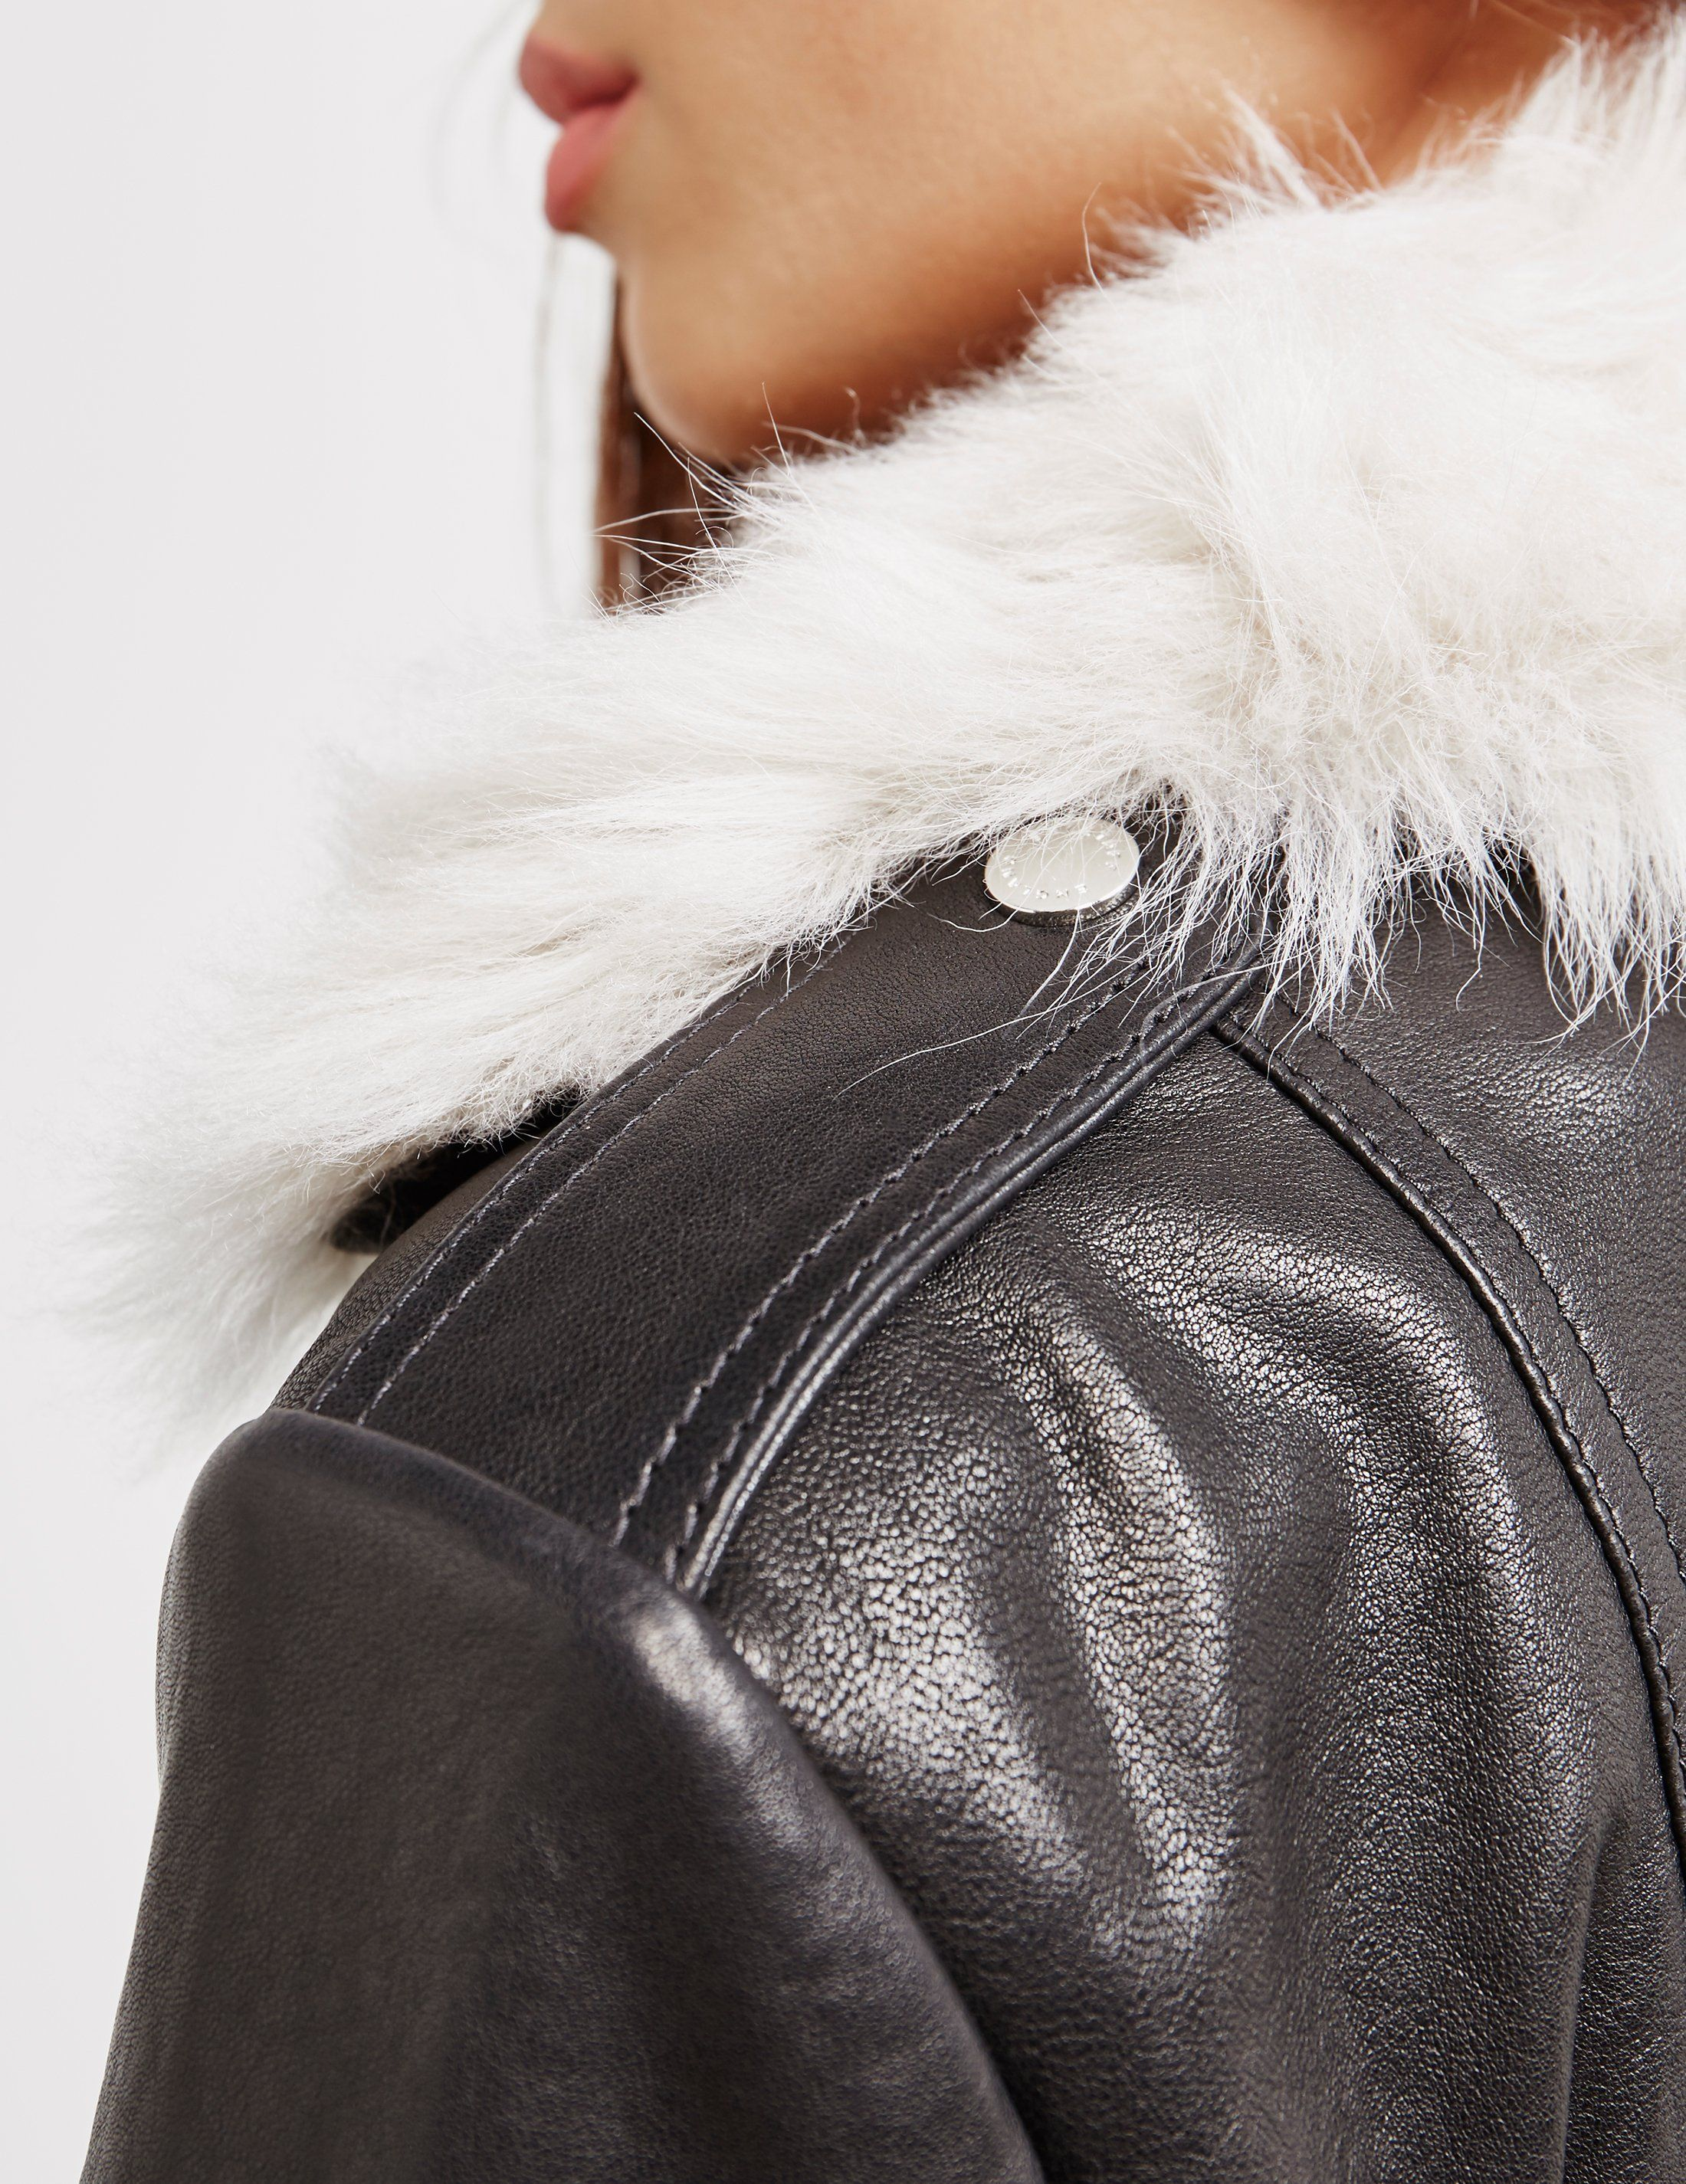 Belstaff MRV 2.0 Leather Jacket - Online Exclusive